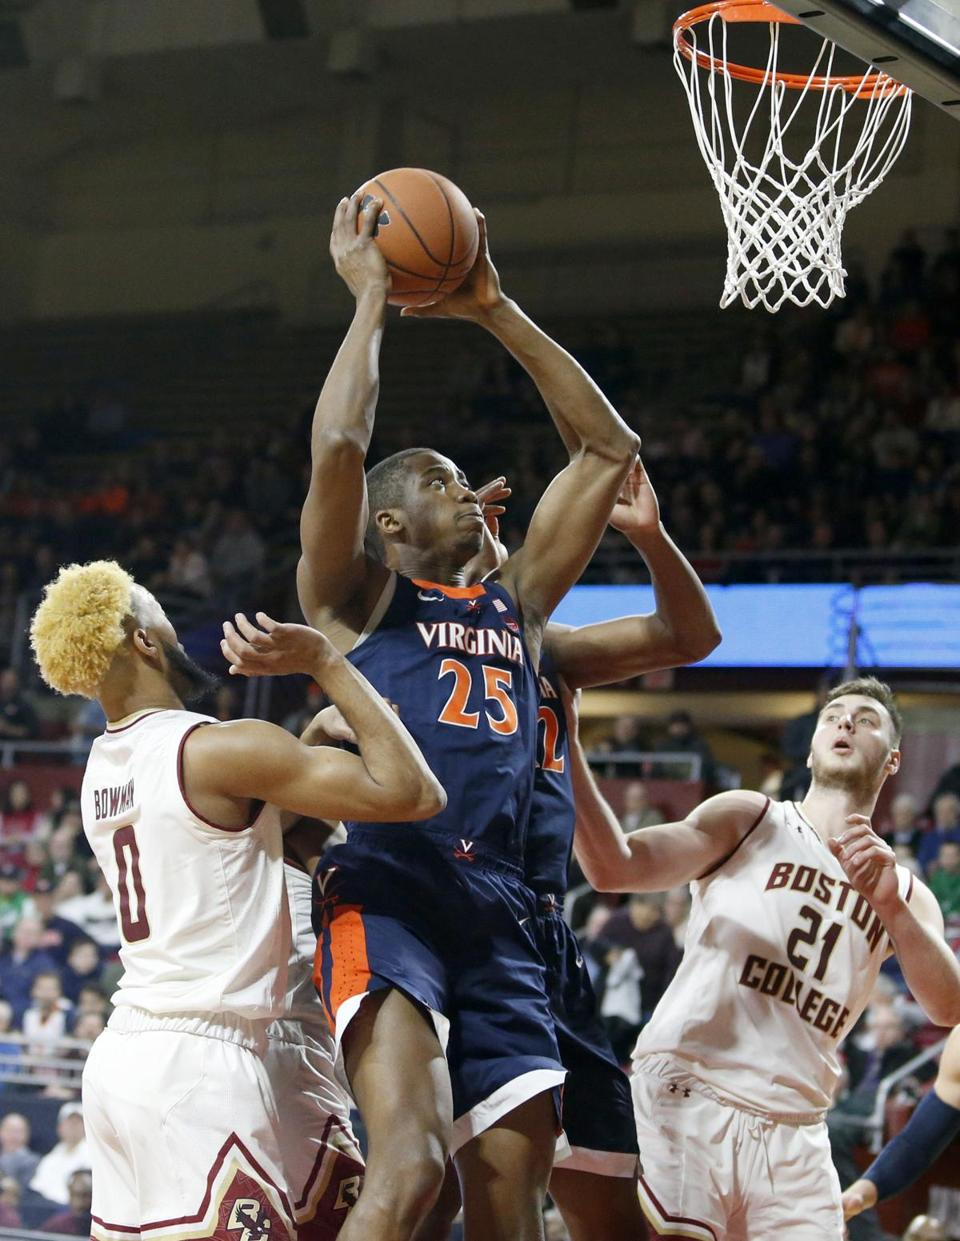 Virginia forward Mamadi Diakite (25) drives to the basket against Boston College for two of his 18 points in Wednesday night's ACC triumph at Chestnut Hill.